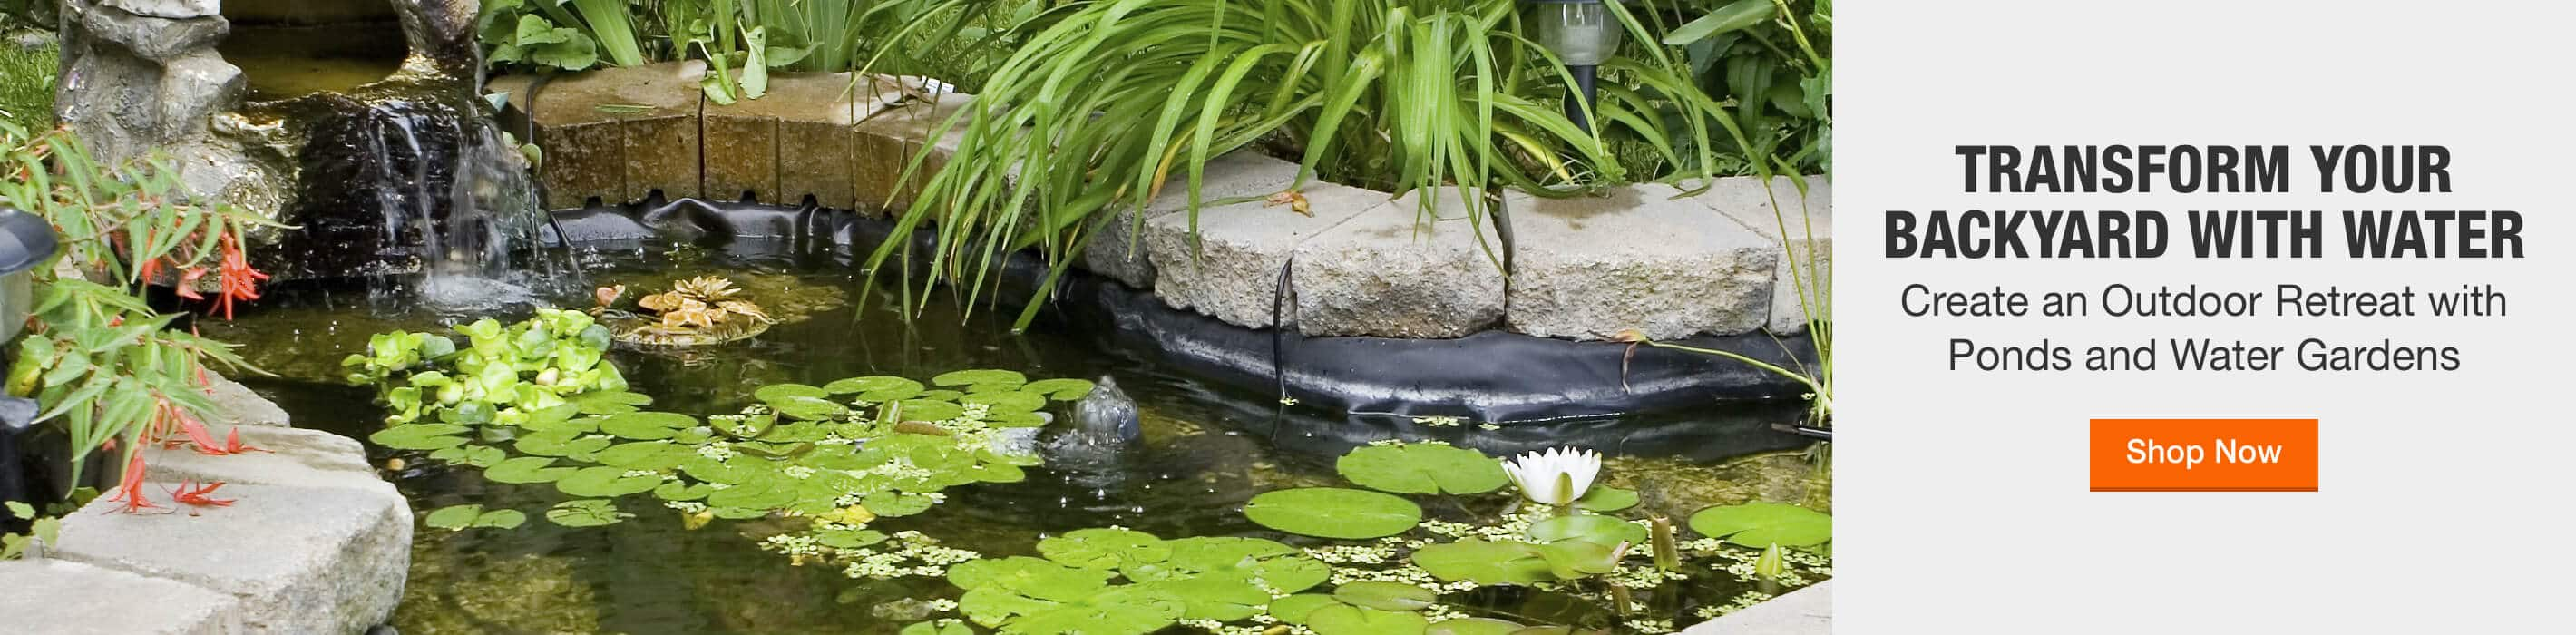 Transform your backyard with water Create an Outdoor Retreat with Ponds and Water Gardens Shop Now